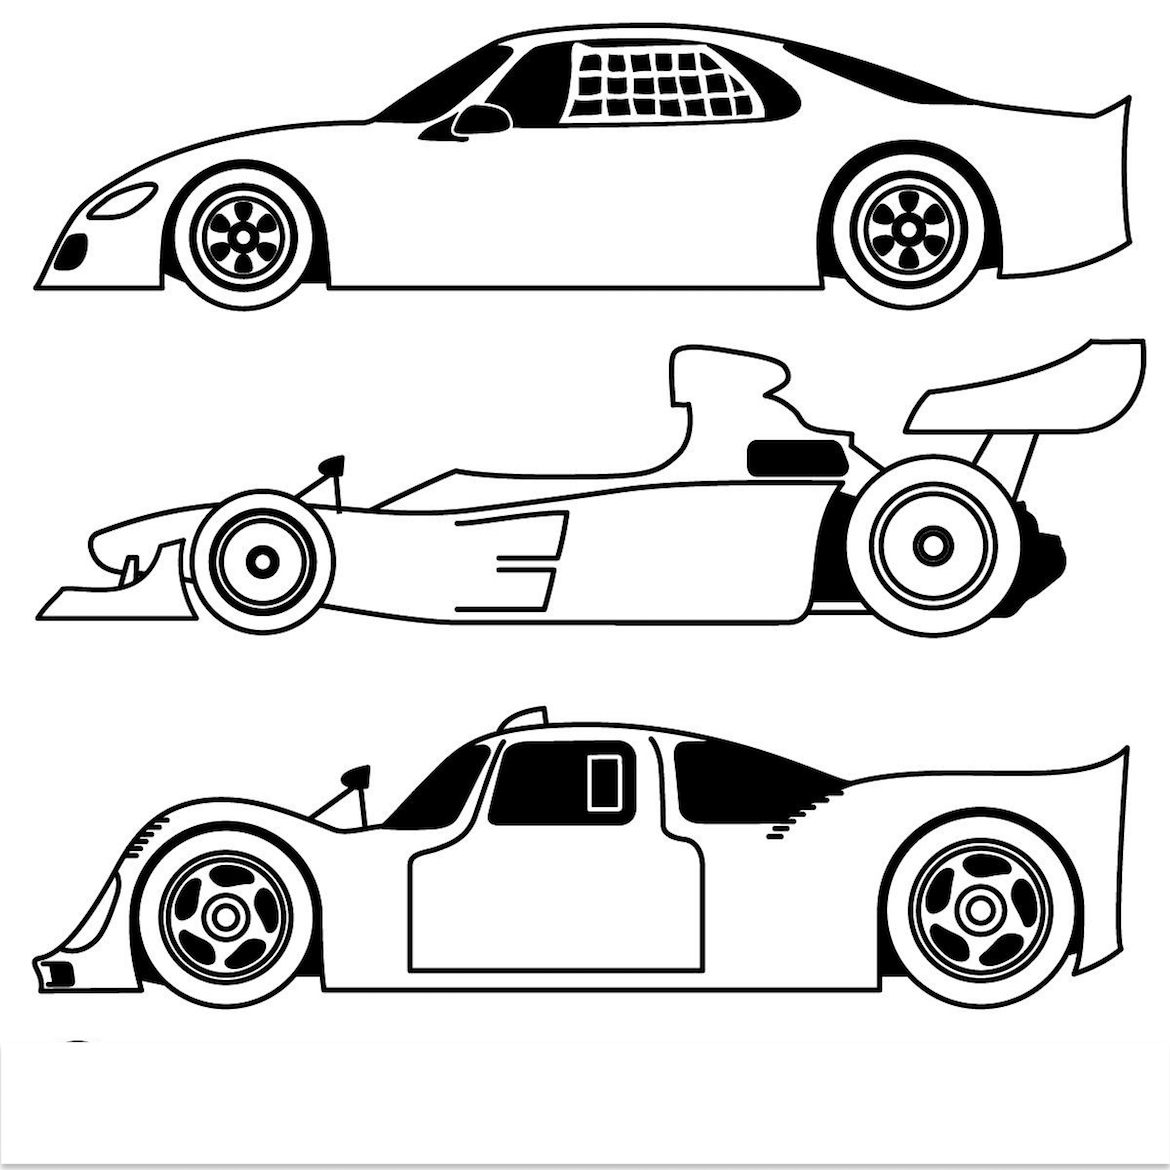 colouring in cars 4 disney cars free printable coloring pages colouring cars in